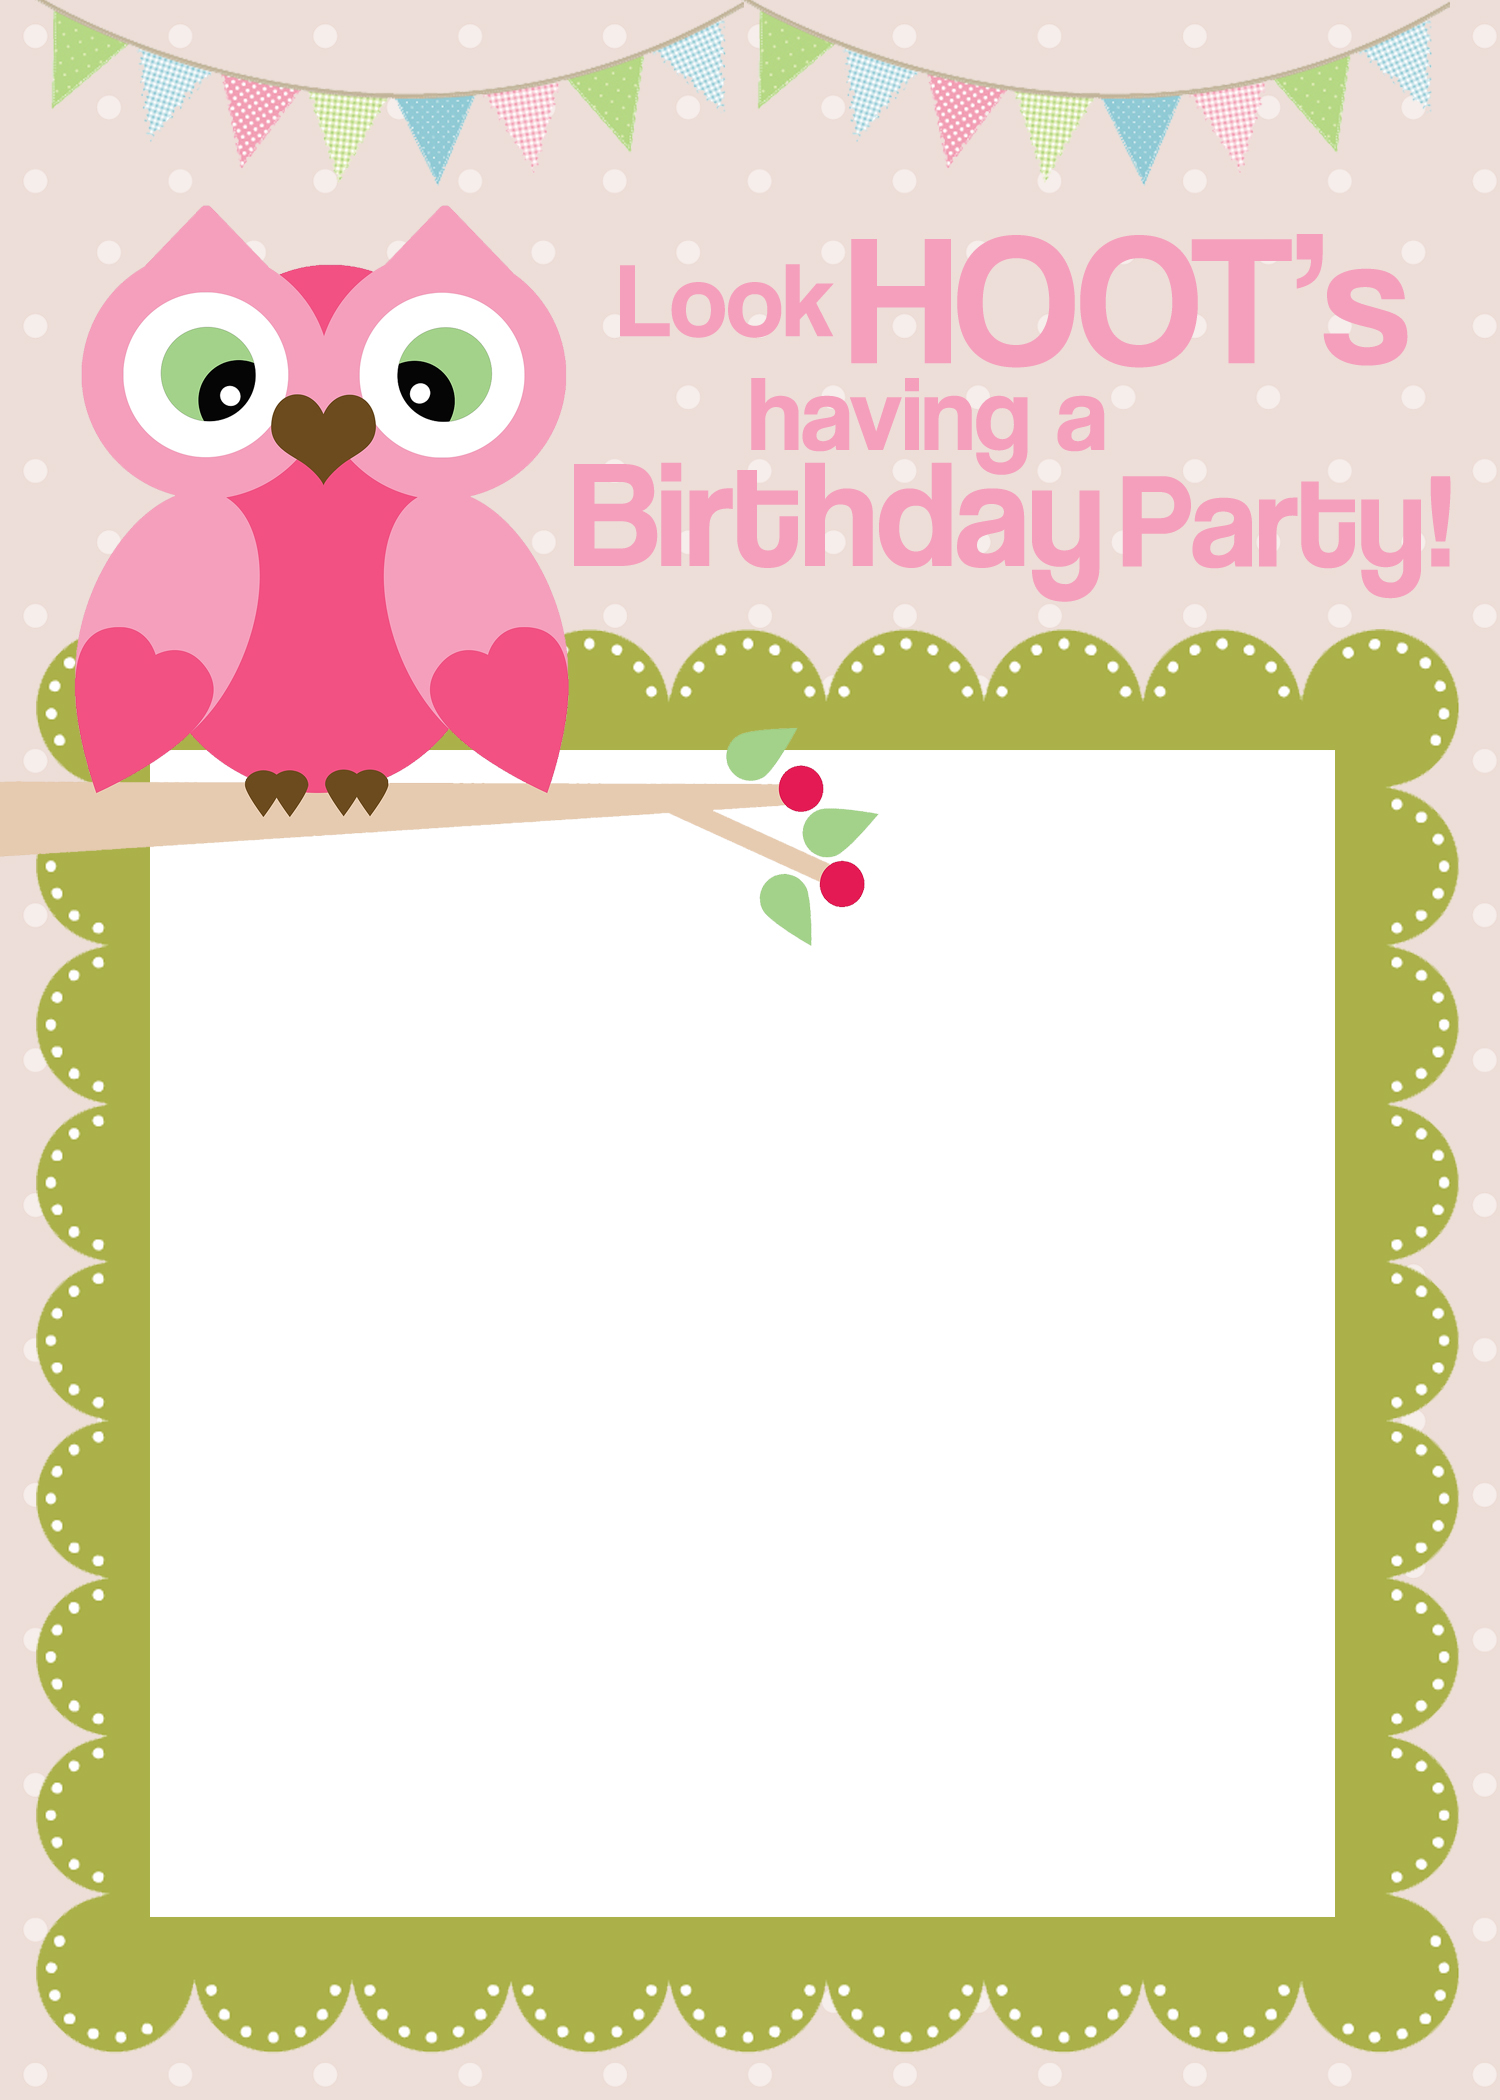 happy birthday invitations free printable ; Best-Birthday-Invitation-Card-Maker-Free-Printable-44-for-Your-HD-Image-Picture-with-Birthday-Invitation-Card-Maker-Free-Printable